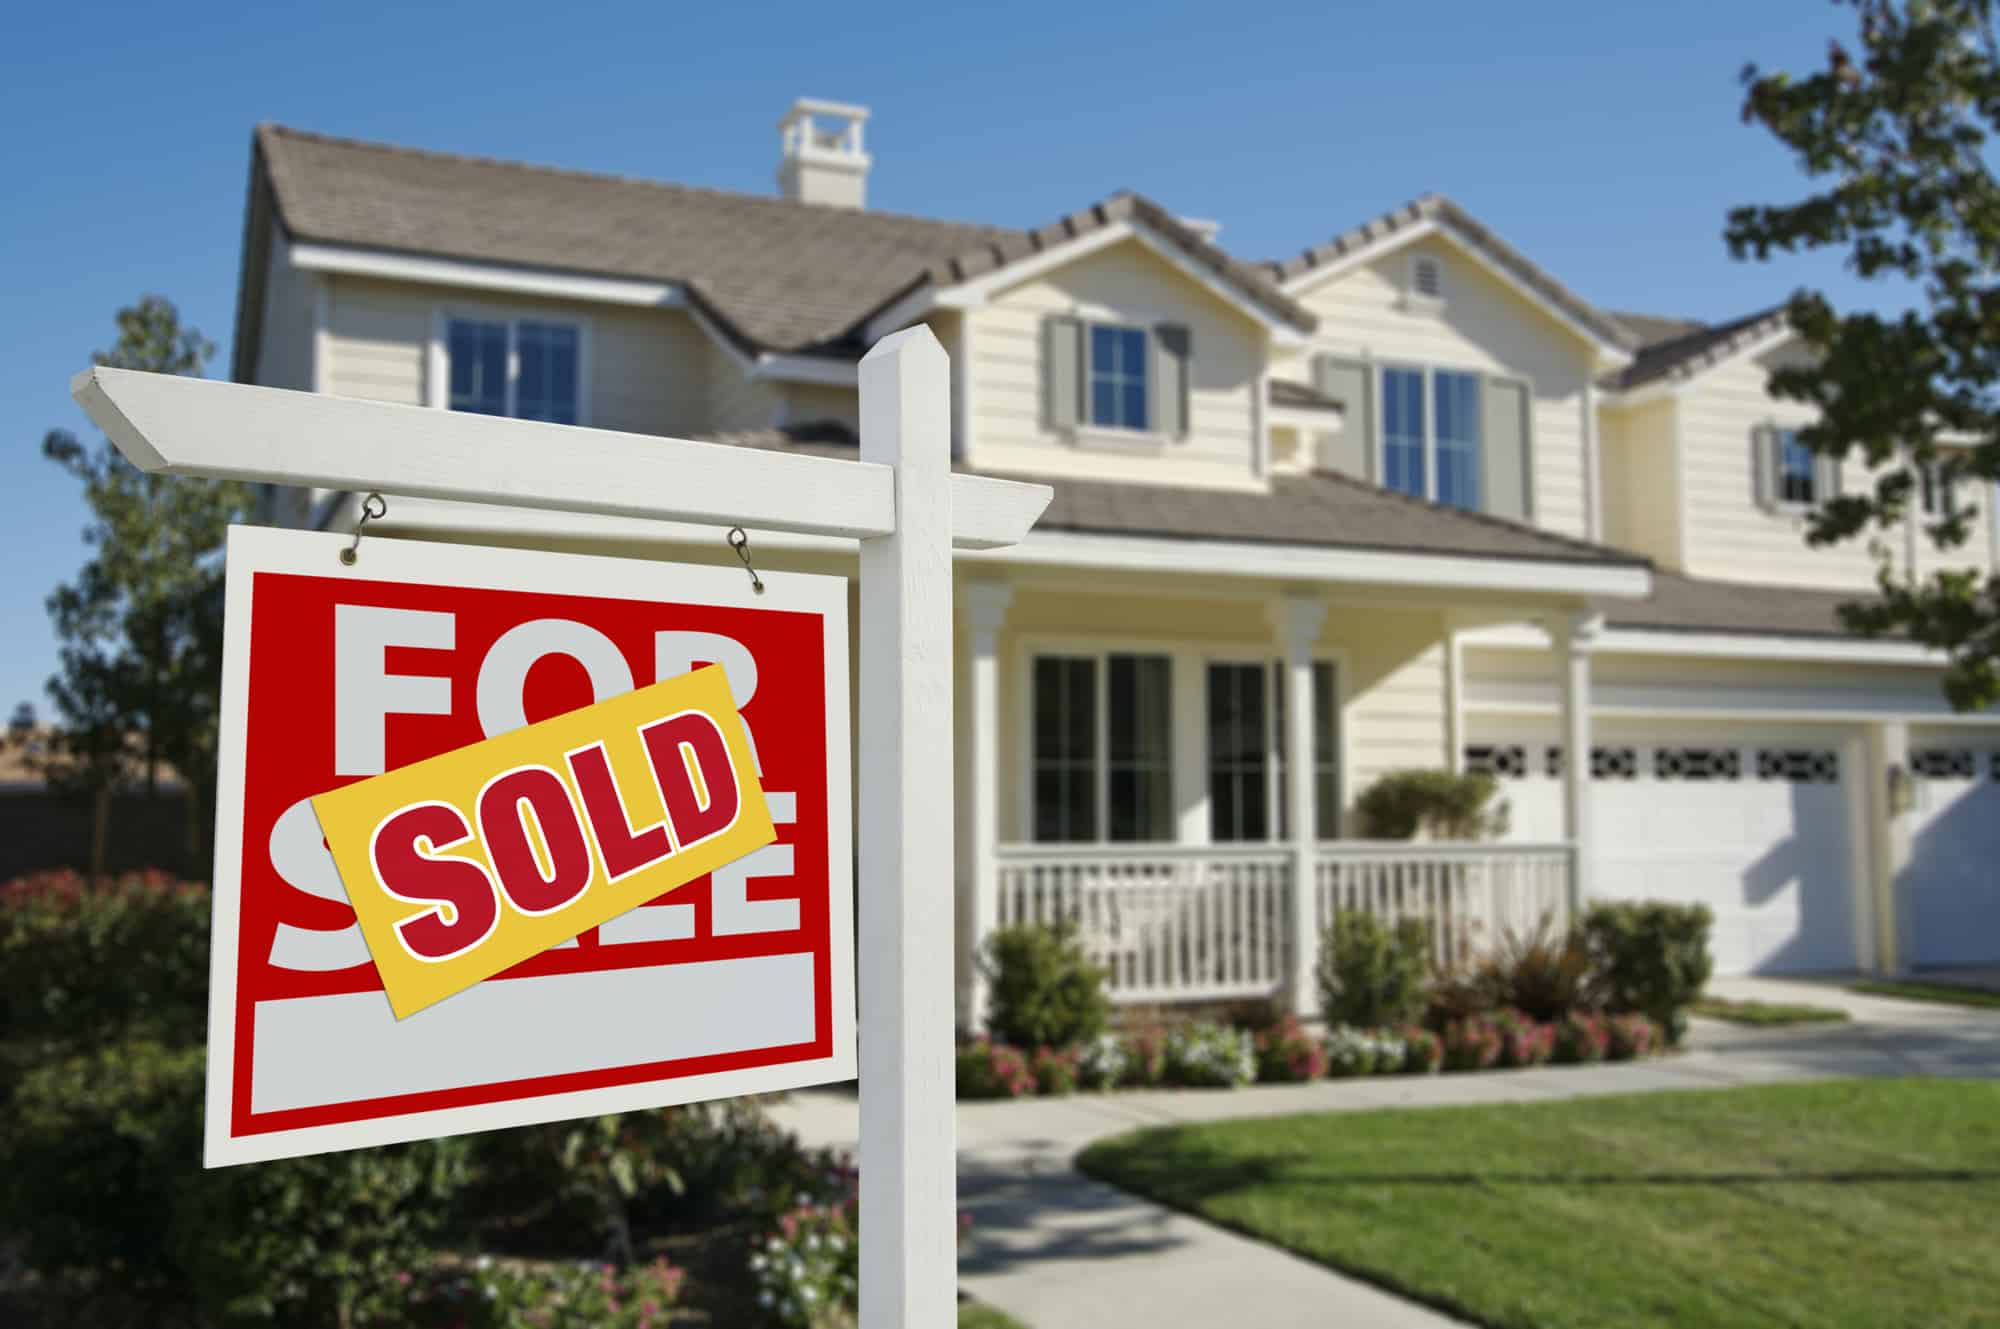 Finding the right buyers for your home in Alexandria, VA requires knowing what not to do. Here are mistakes to avoid when selling homes in Alexandria.